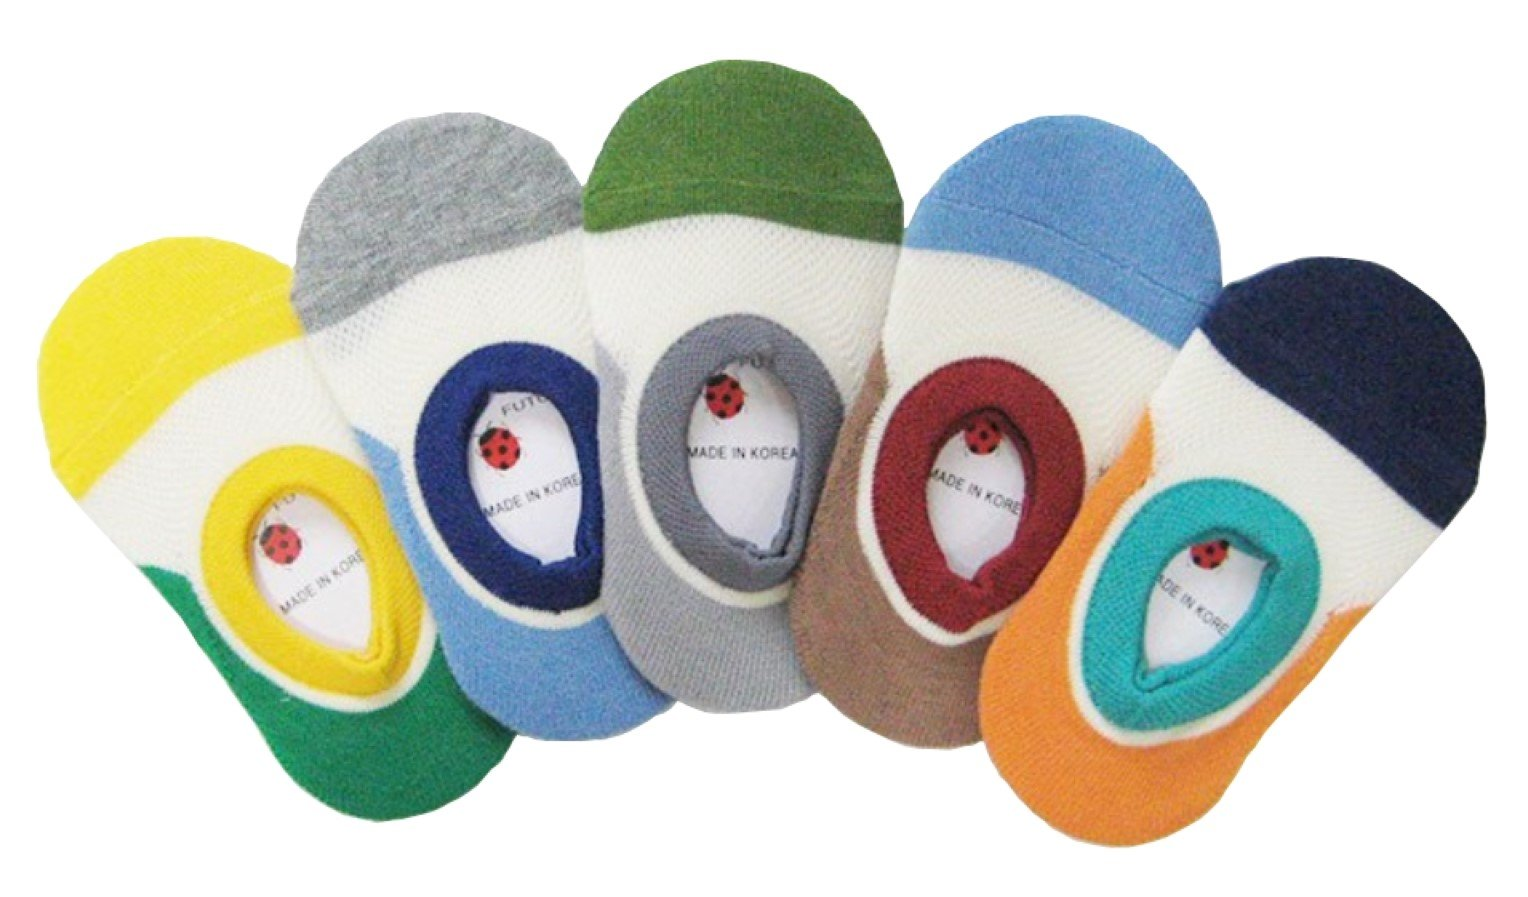 Short Baby Socks, Non-Skid, 5-Pack set for 1-3 Year Baby